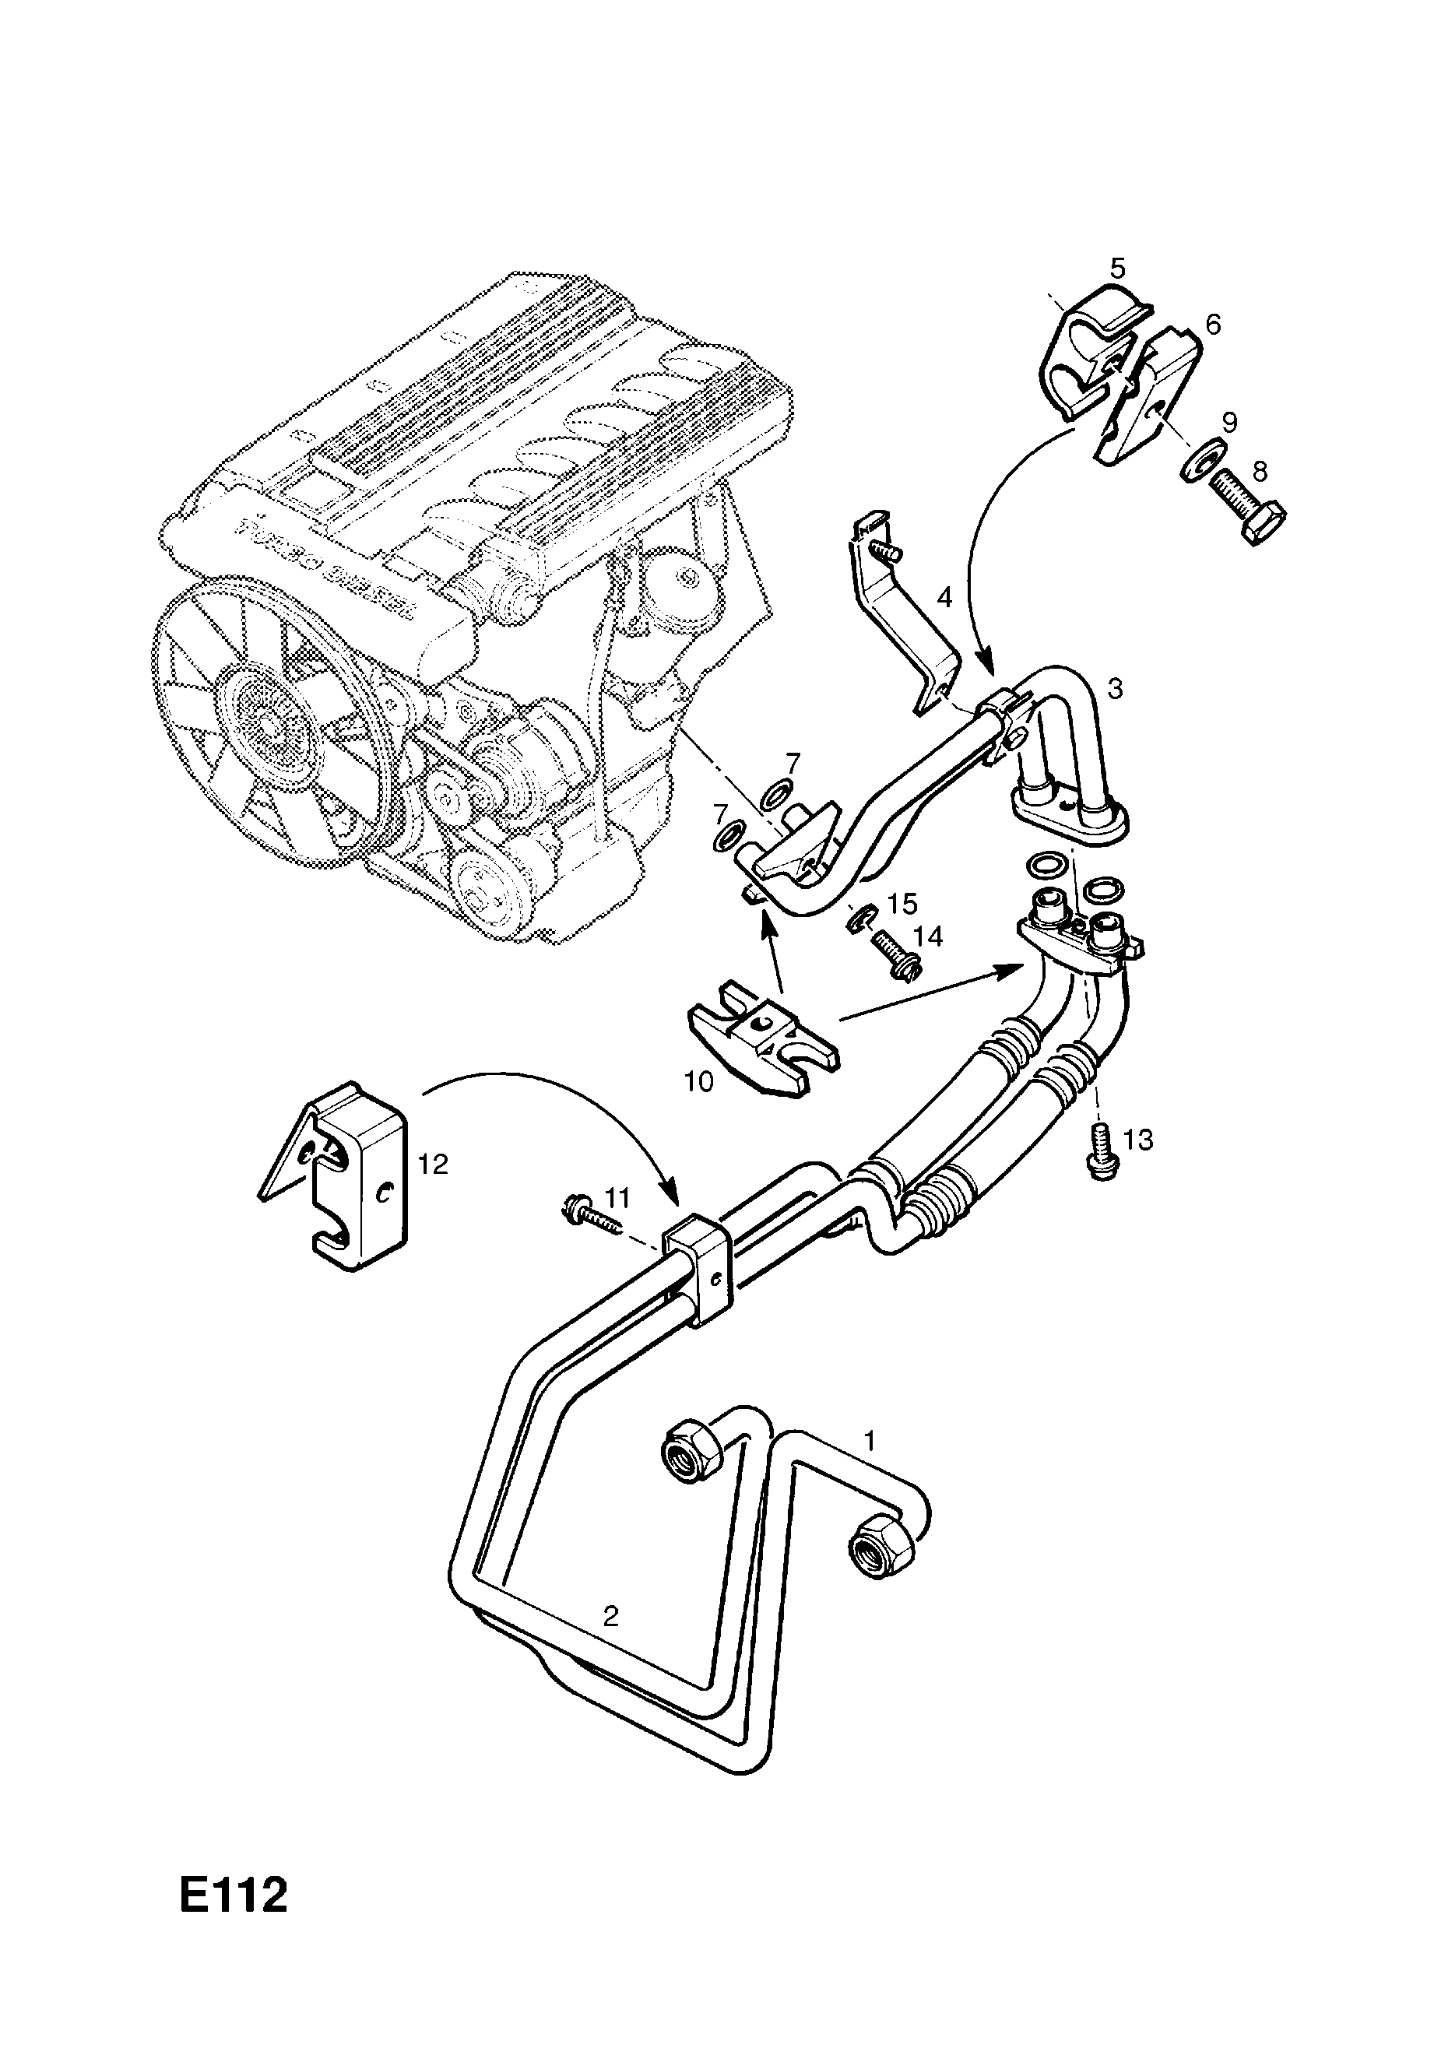 infiniti parts further 1996 infiniti i30 engine diagram on infiniti